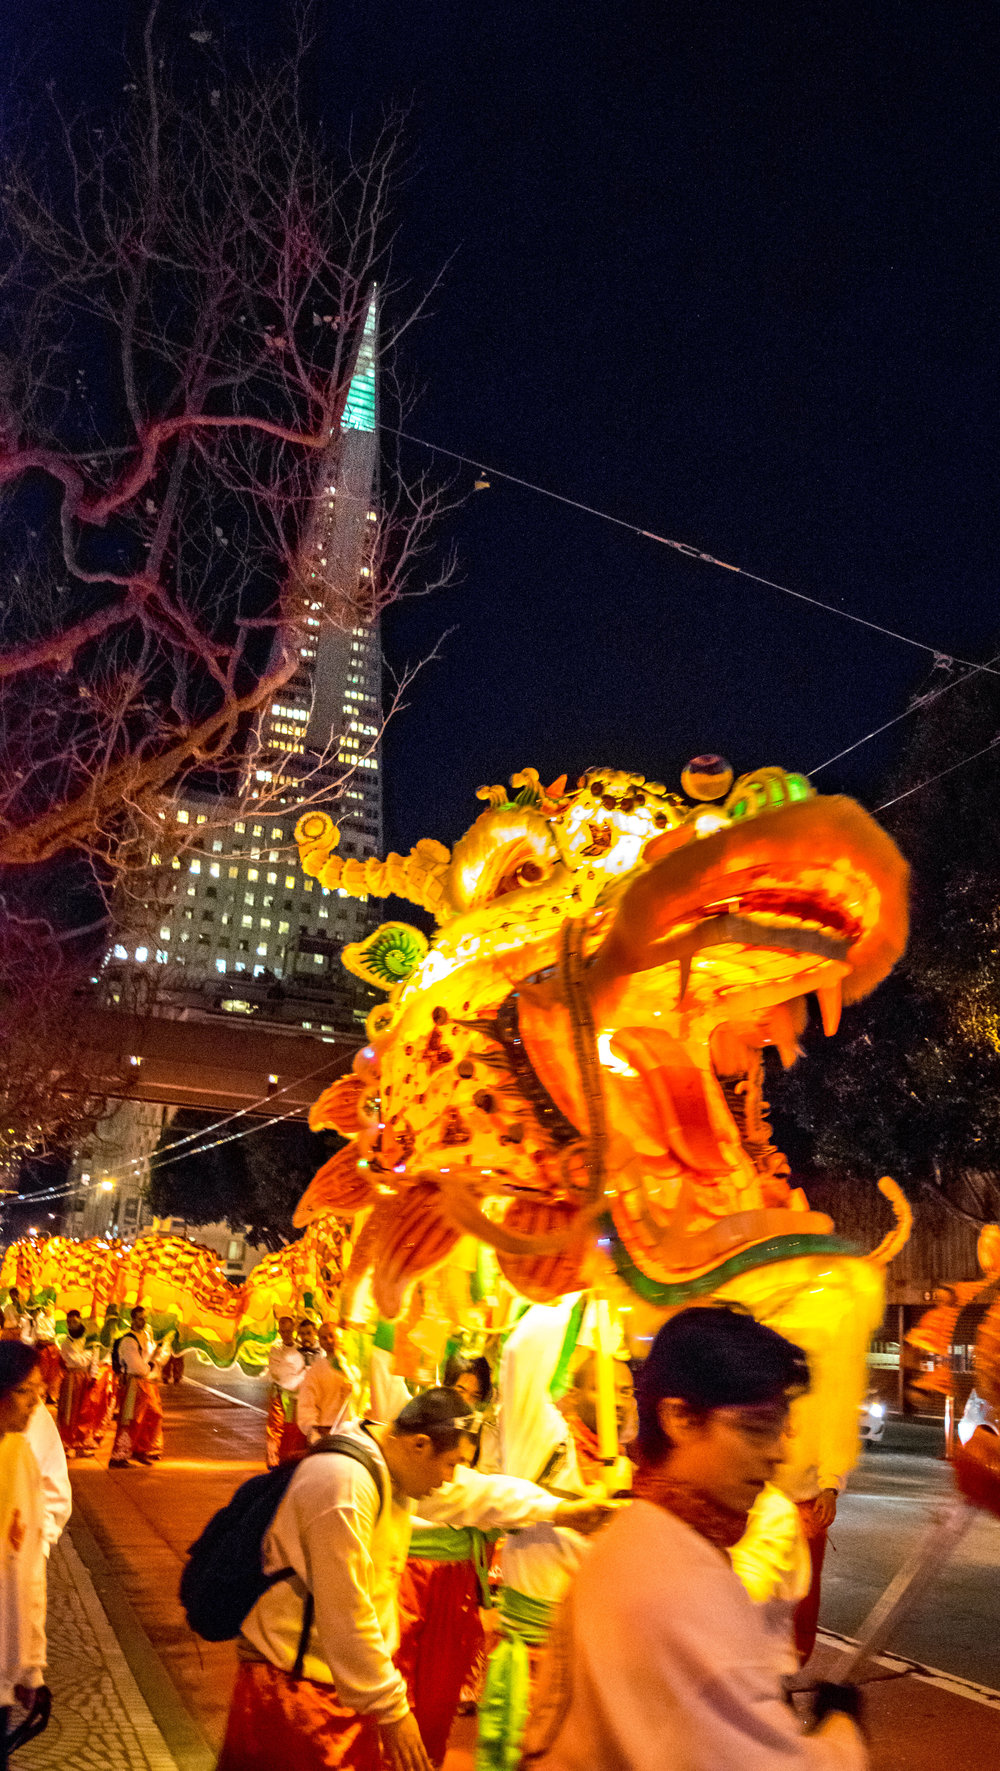 Parading Dragon with the Transamerica Pyramid seen behind.